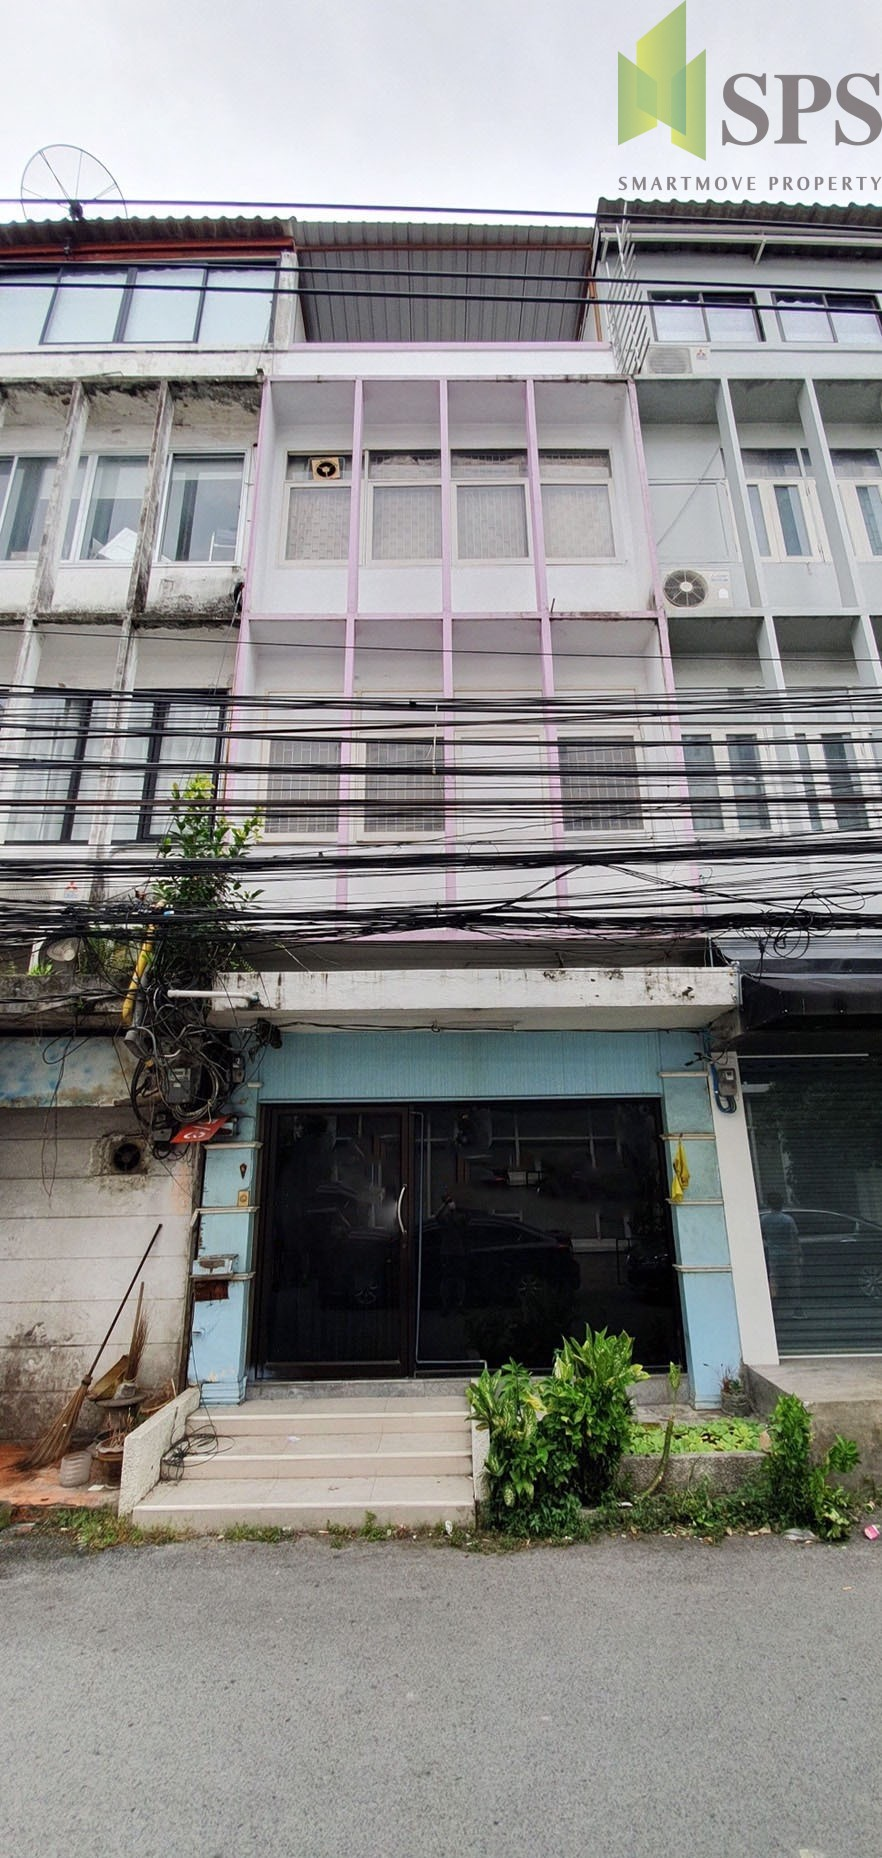 For Rent Commercial / Home office at Sukhumvit 51 Near BTS Thonglor (Property ID: SPS-PA269)